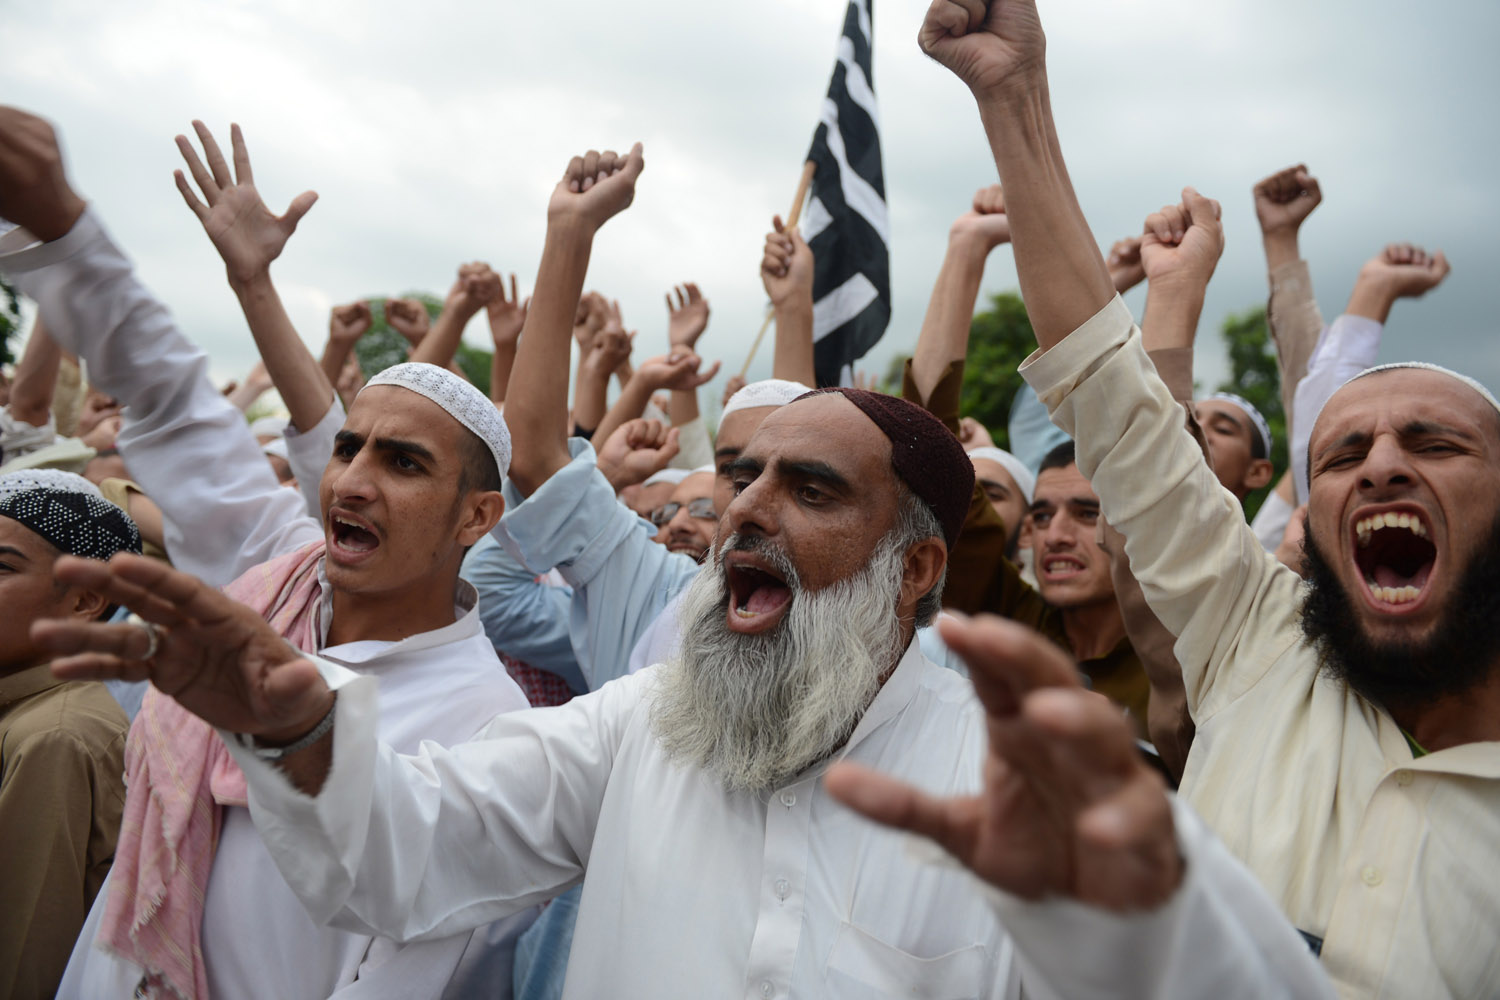 Sept. 16, 2012. Pakistani activists of Jamiat Ulma e Islam shout slogans during a rally against an anti-Islam movie in Islamabad.